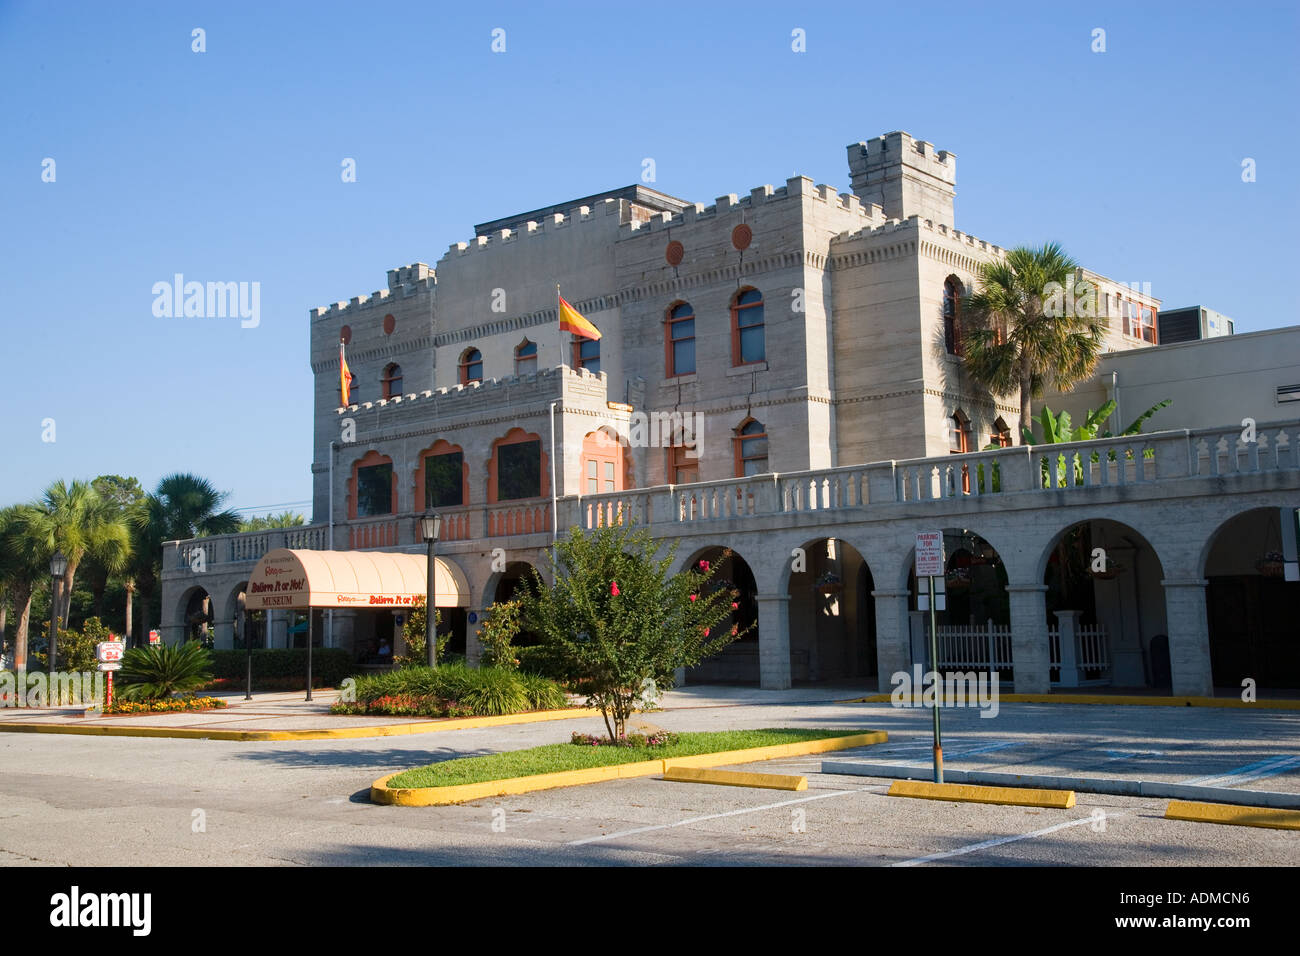 Ripley s Believe it or Not St Augustine Florida USA Photo Stock